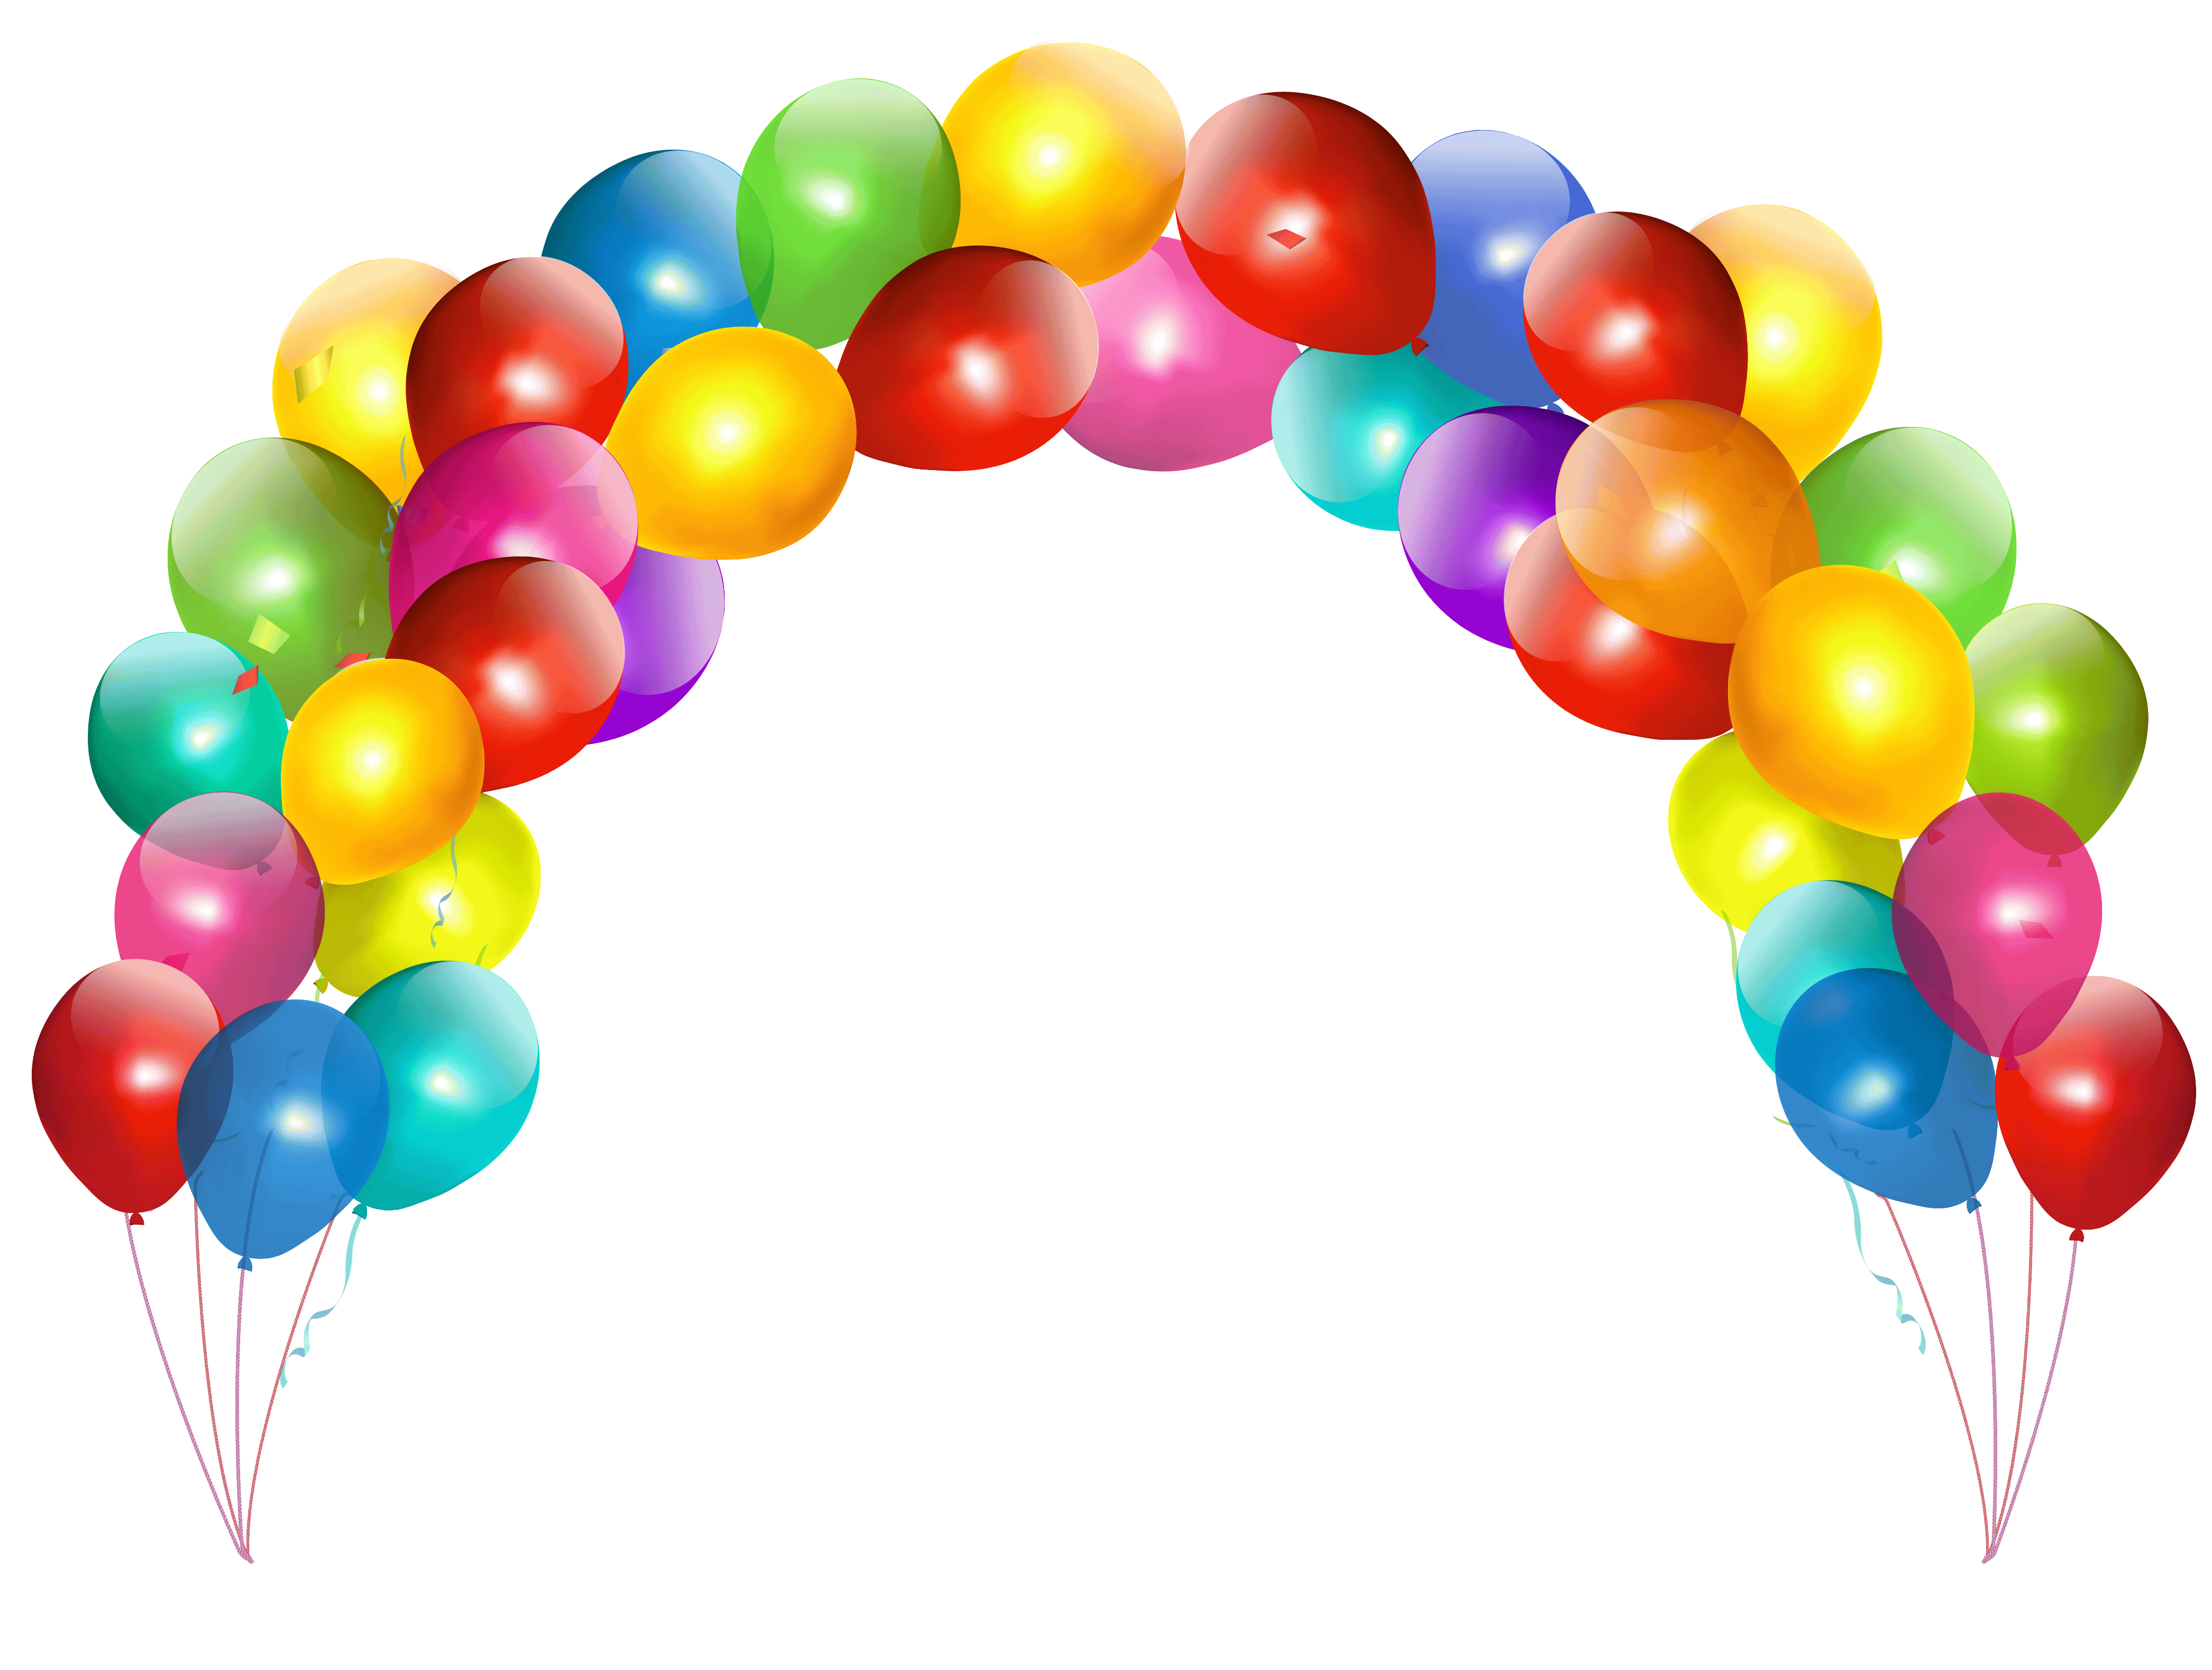 Animated Birthday Balloons Clip Art - ClipArt Best